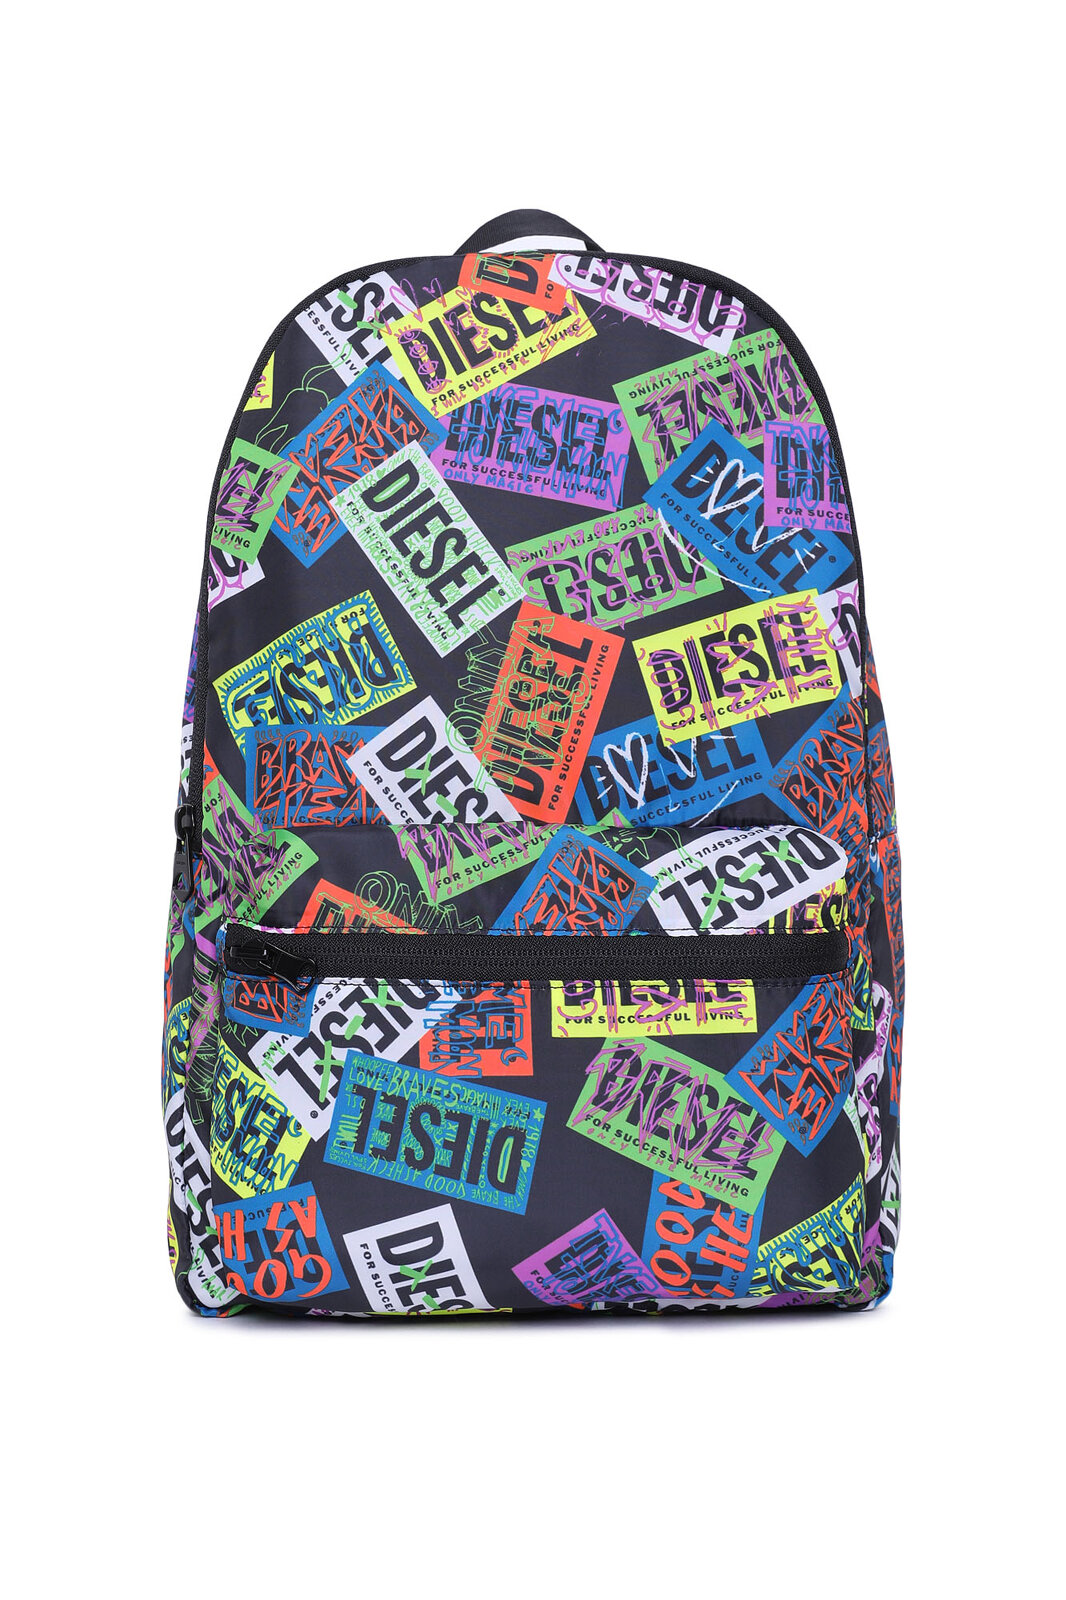 Allsketch Drawpack Borsa - Diesel Kid